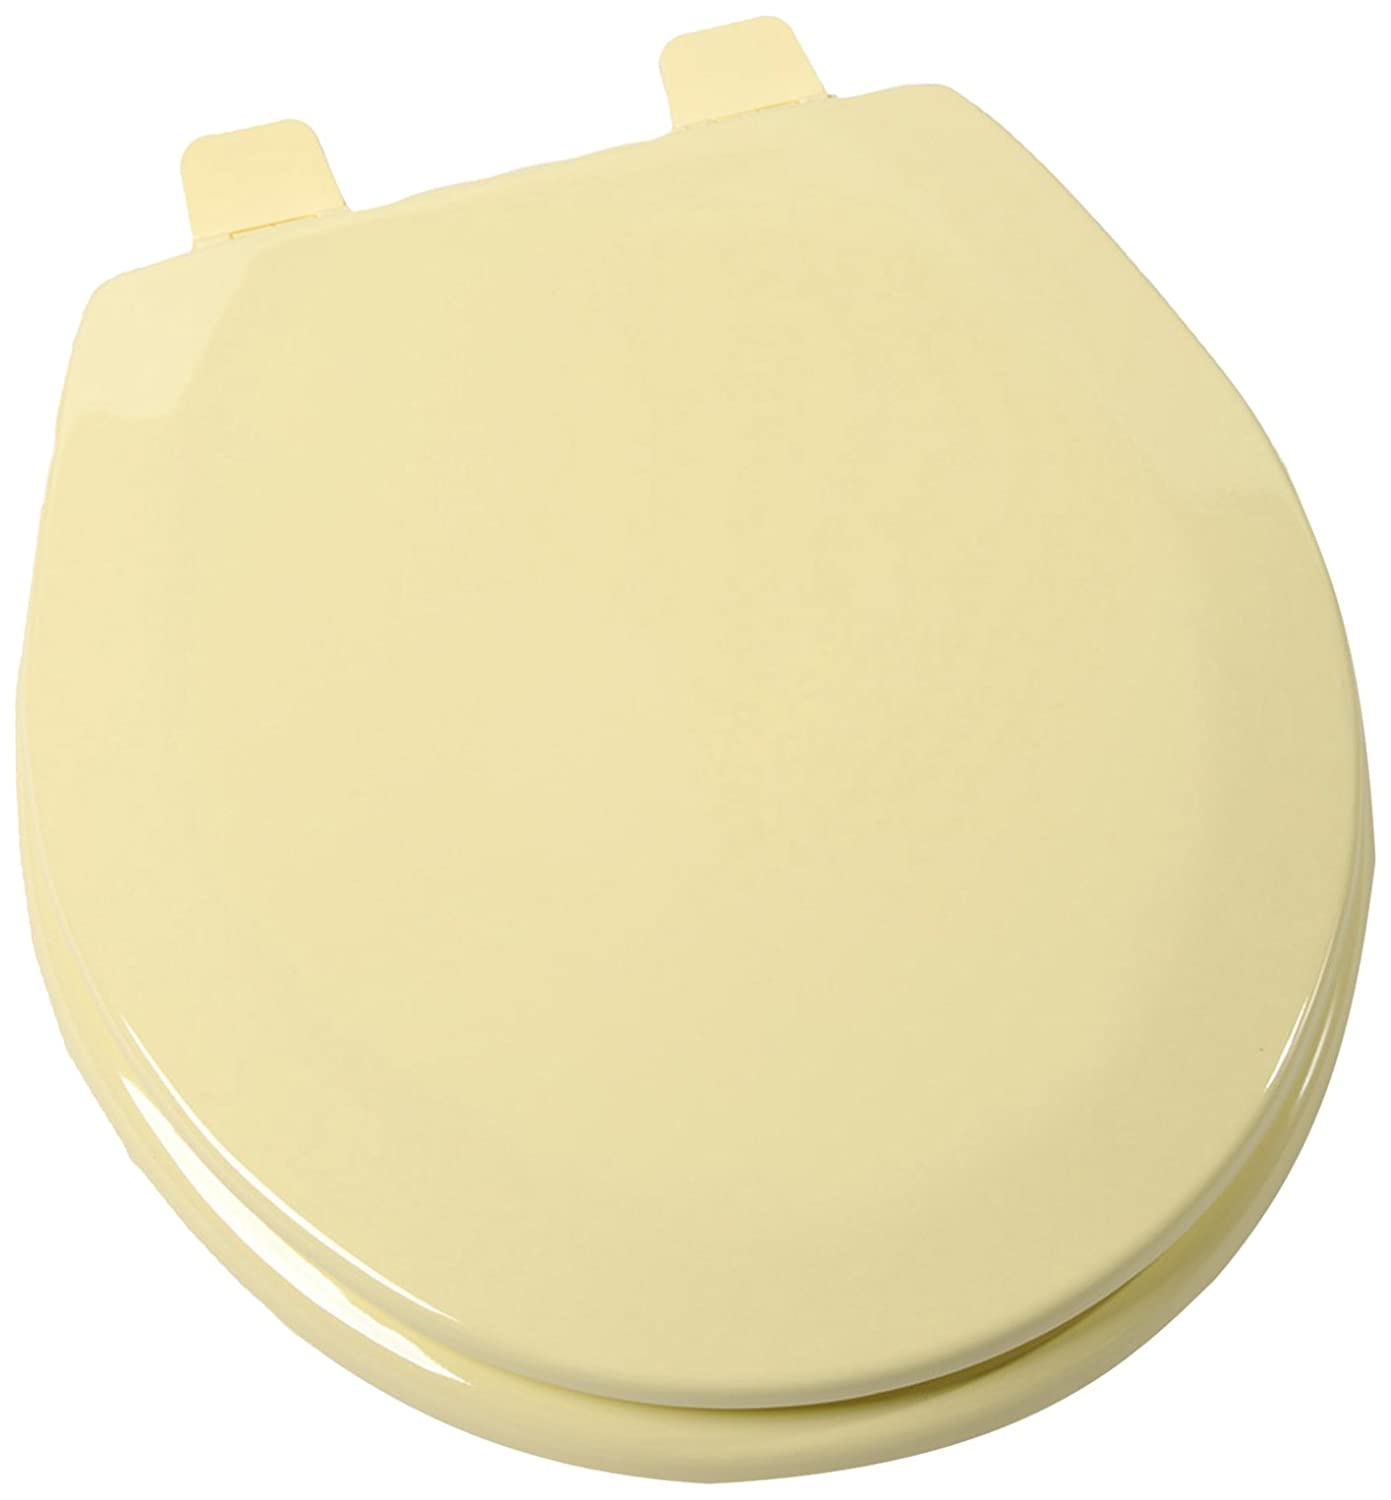 Comfort Seats C3B4R250 Deluxe Molded Wood Round Closed Front with Cover